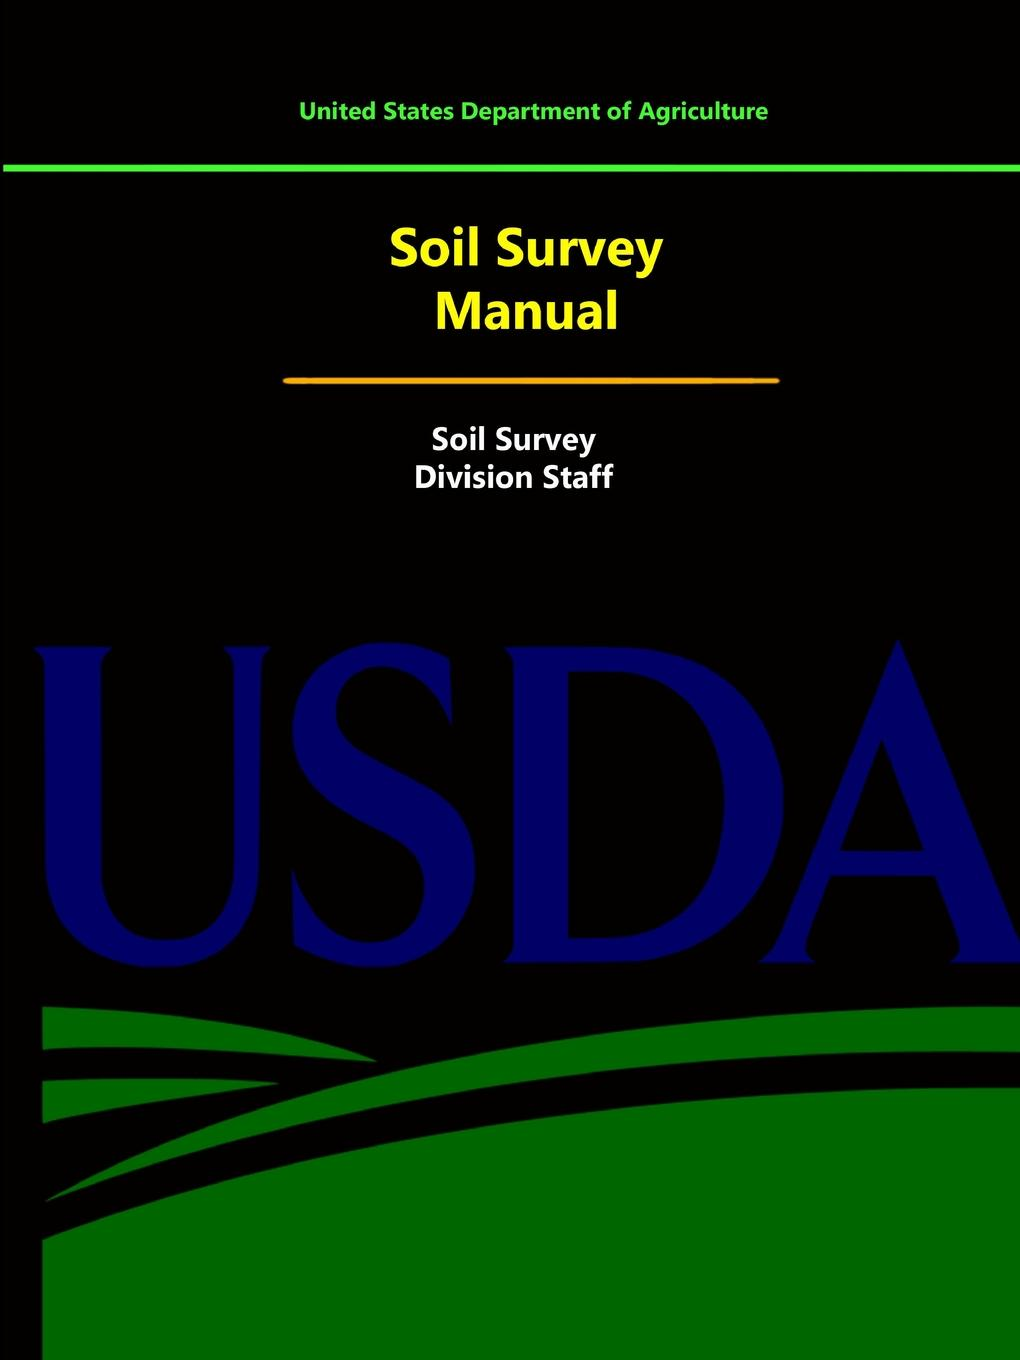 U.S. Department of Agriculture Soil Survey Manual i i tolpeshta aluminum compounds in soils manual